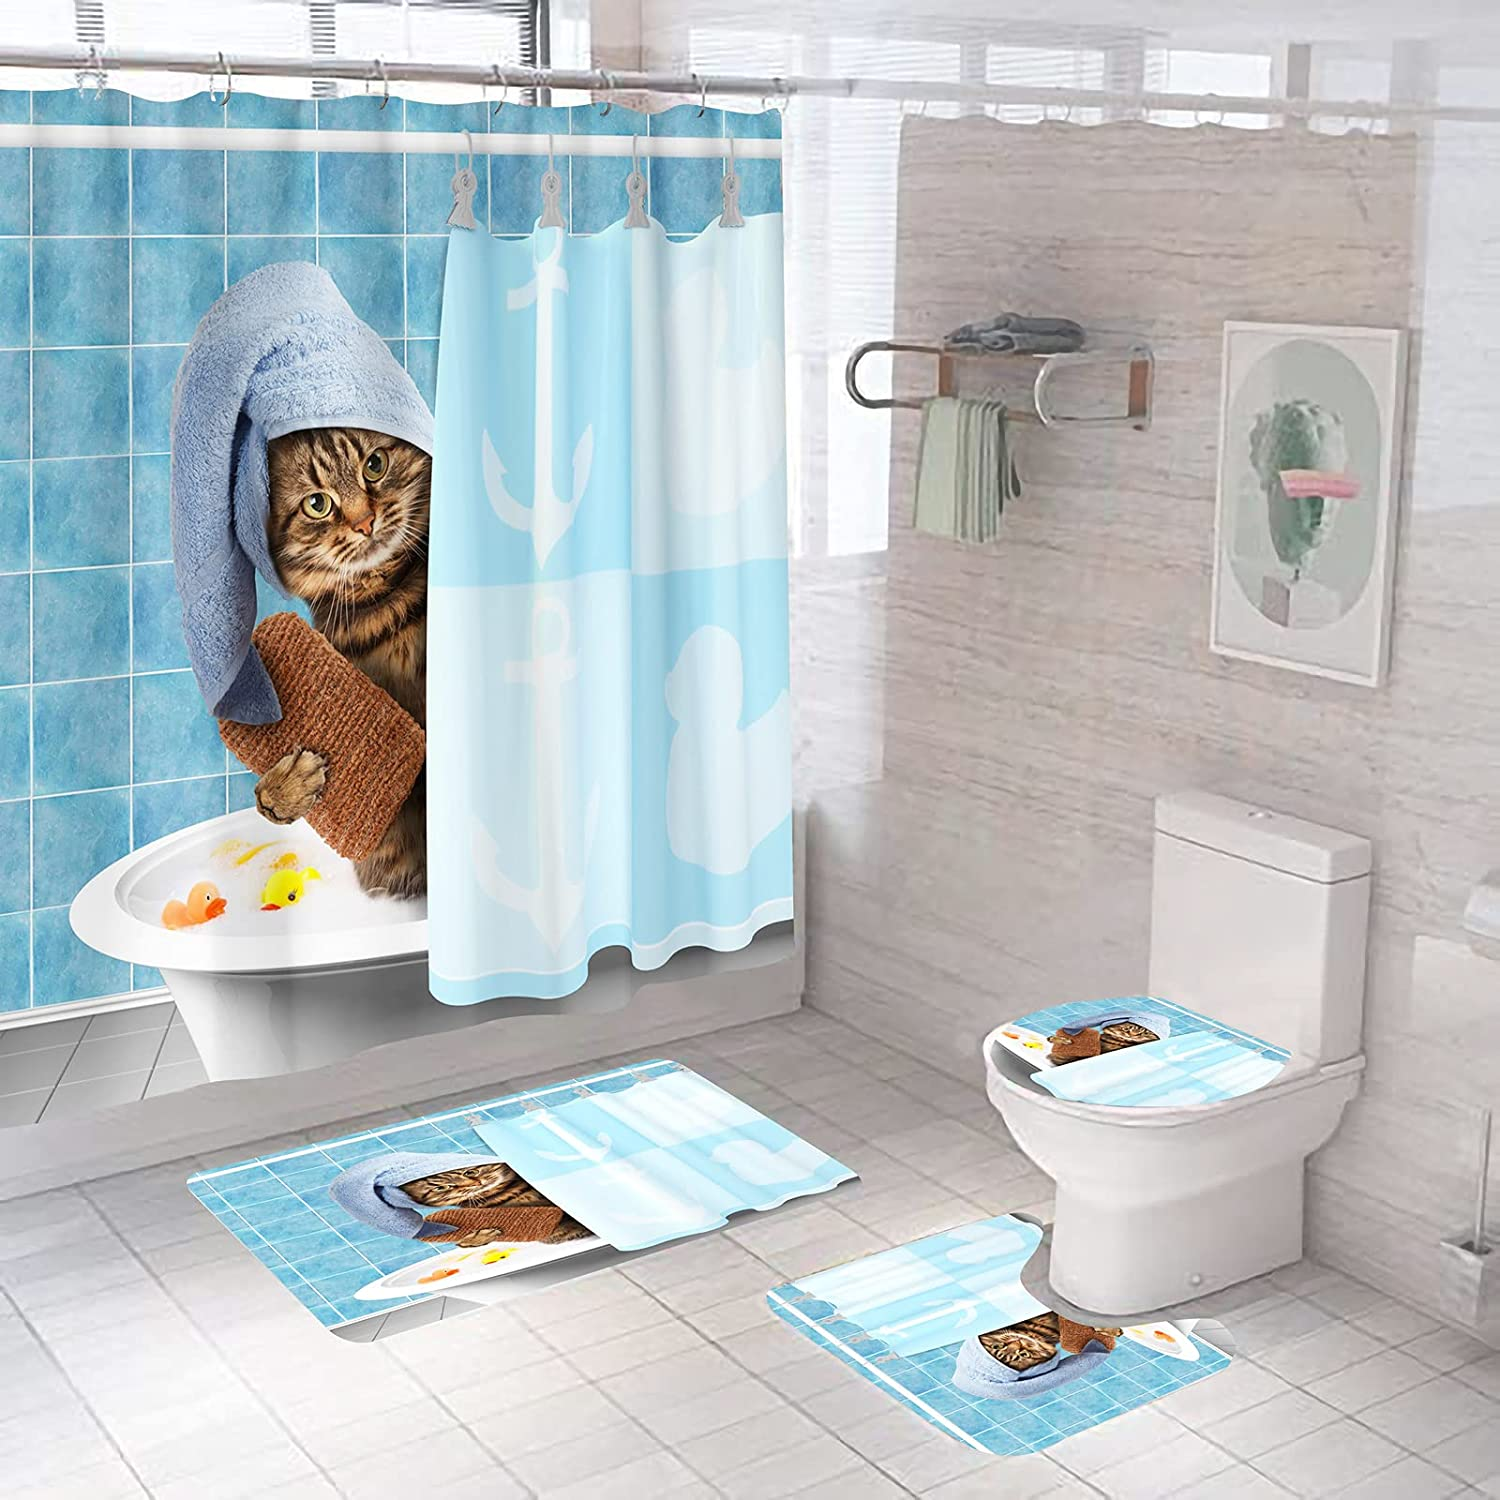 Palglg Funny Cat 4 Recommended Piece Limited time sale Curtain Set Cute Curt Shower